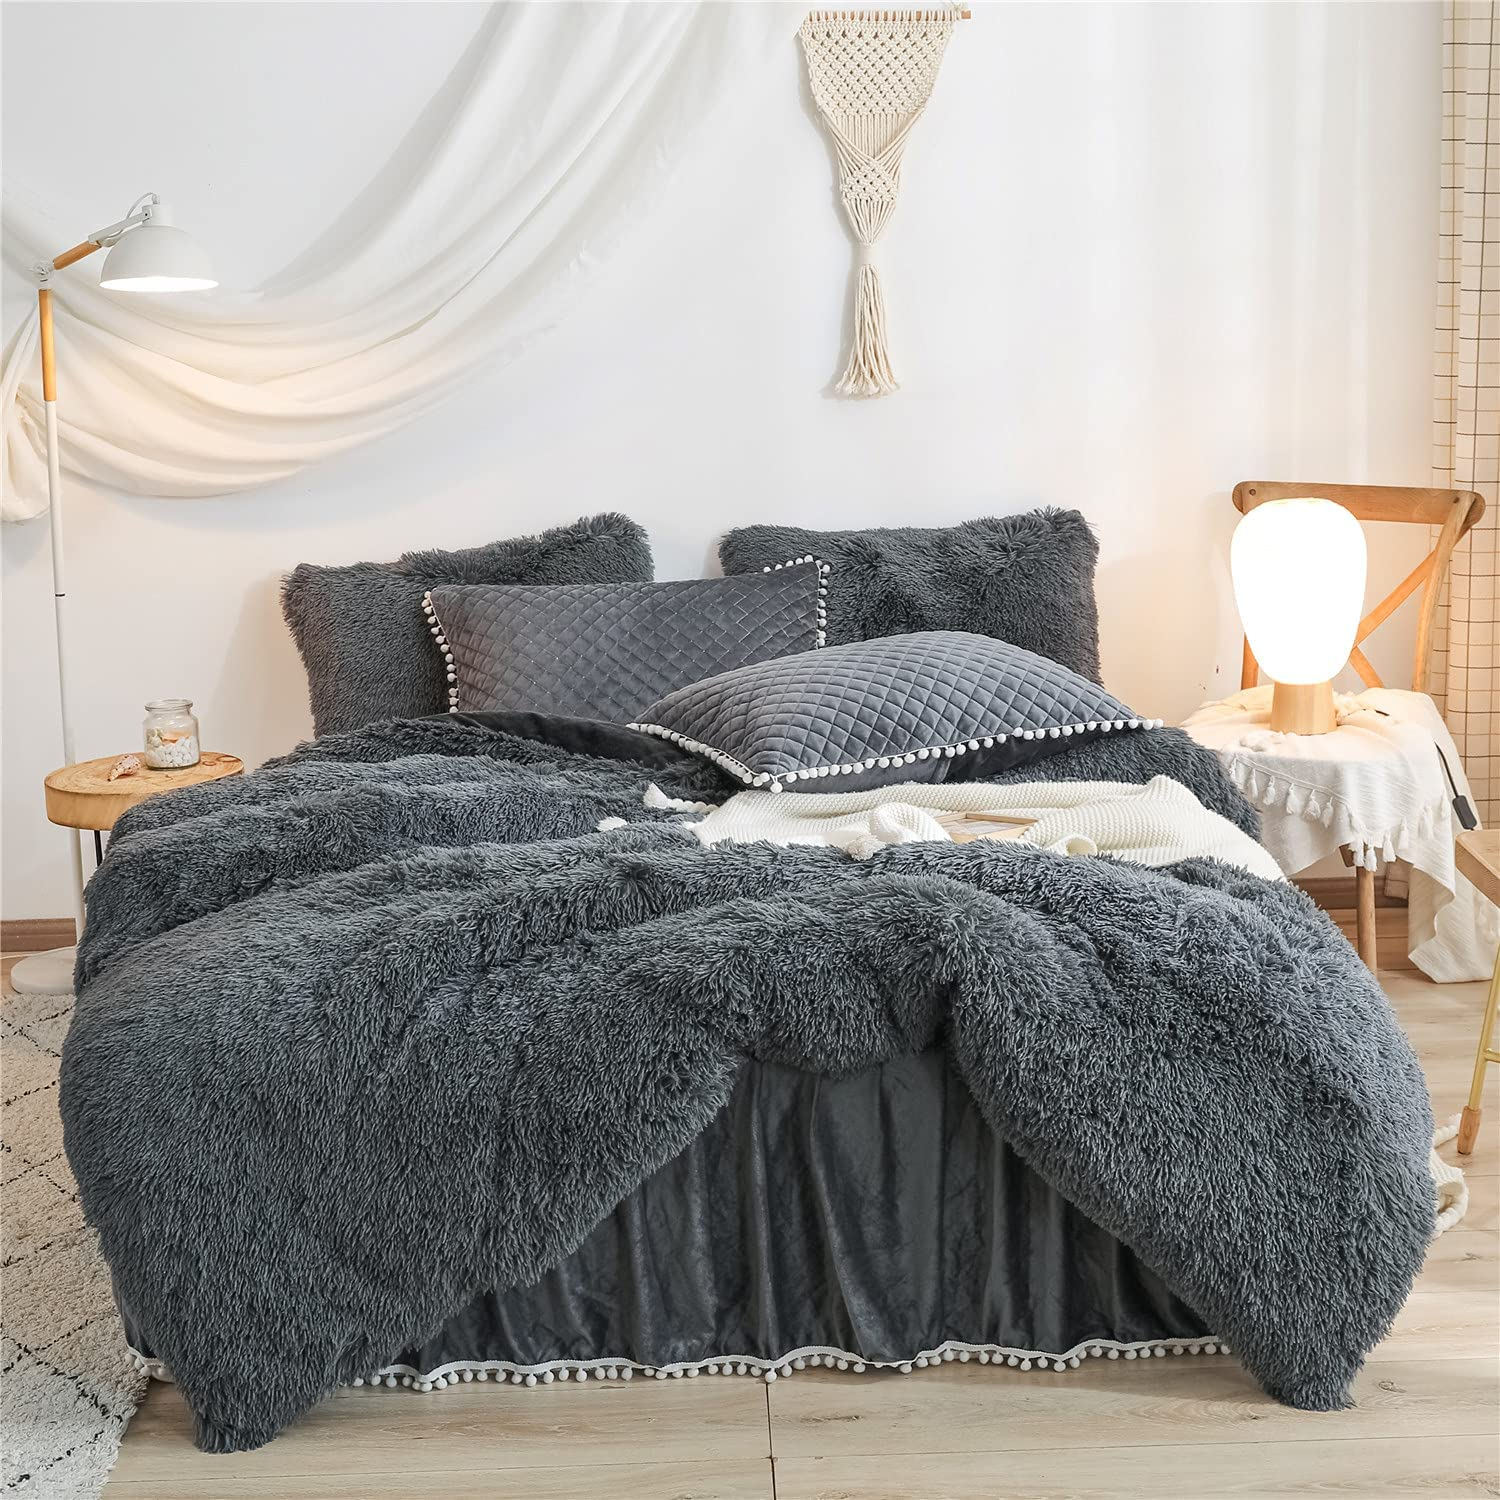 Dark Dealing full price reduction Gray Luxury Fluffy Shaggy Duvet Faux Ranking TOP17 Cute Cover Comfort Fur